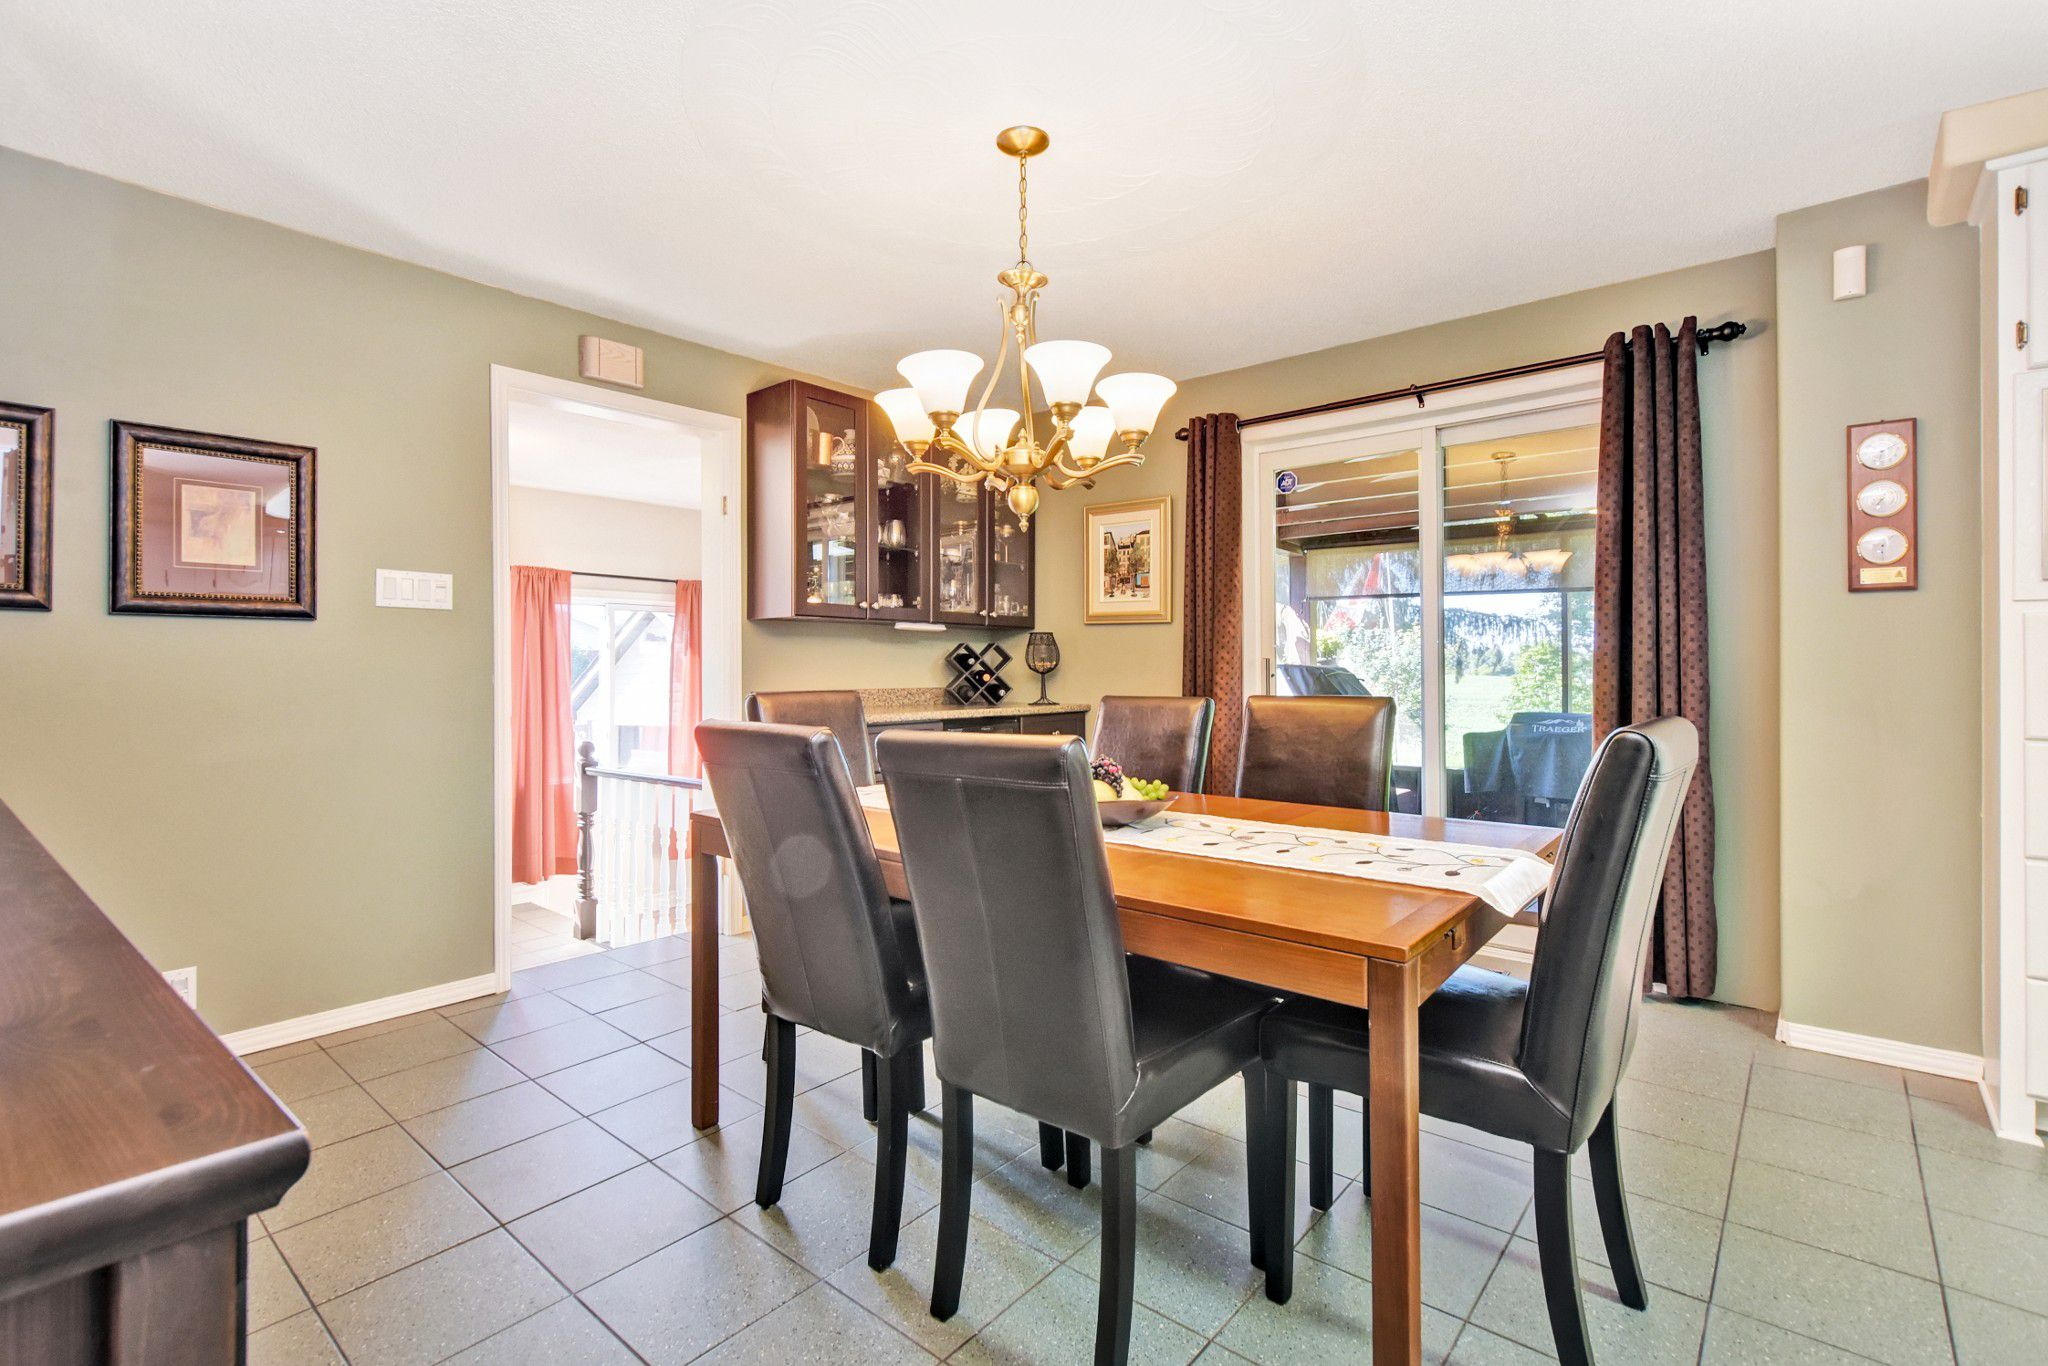 Photo 8: Photos: 5000 Dunning Road in Ottawa: Bearbrook House for sale